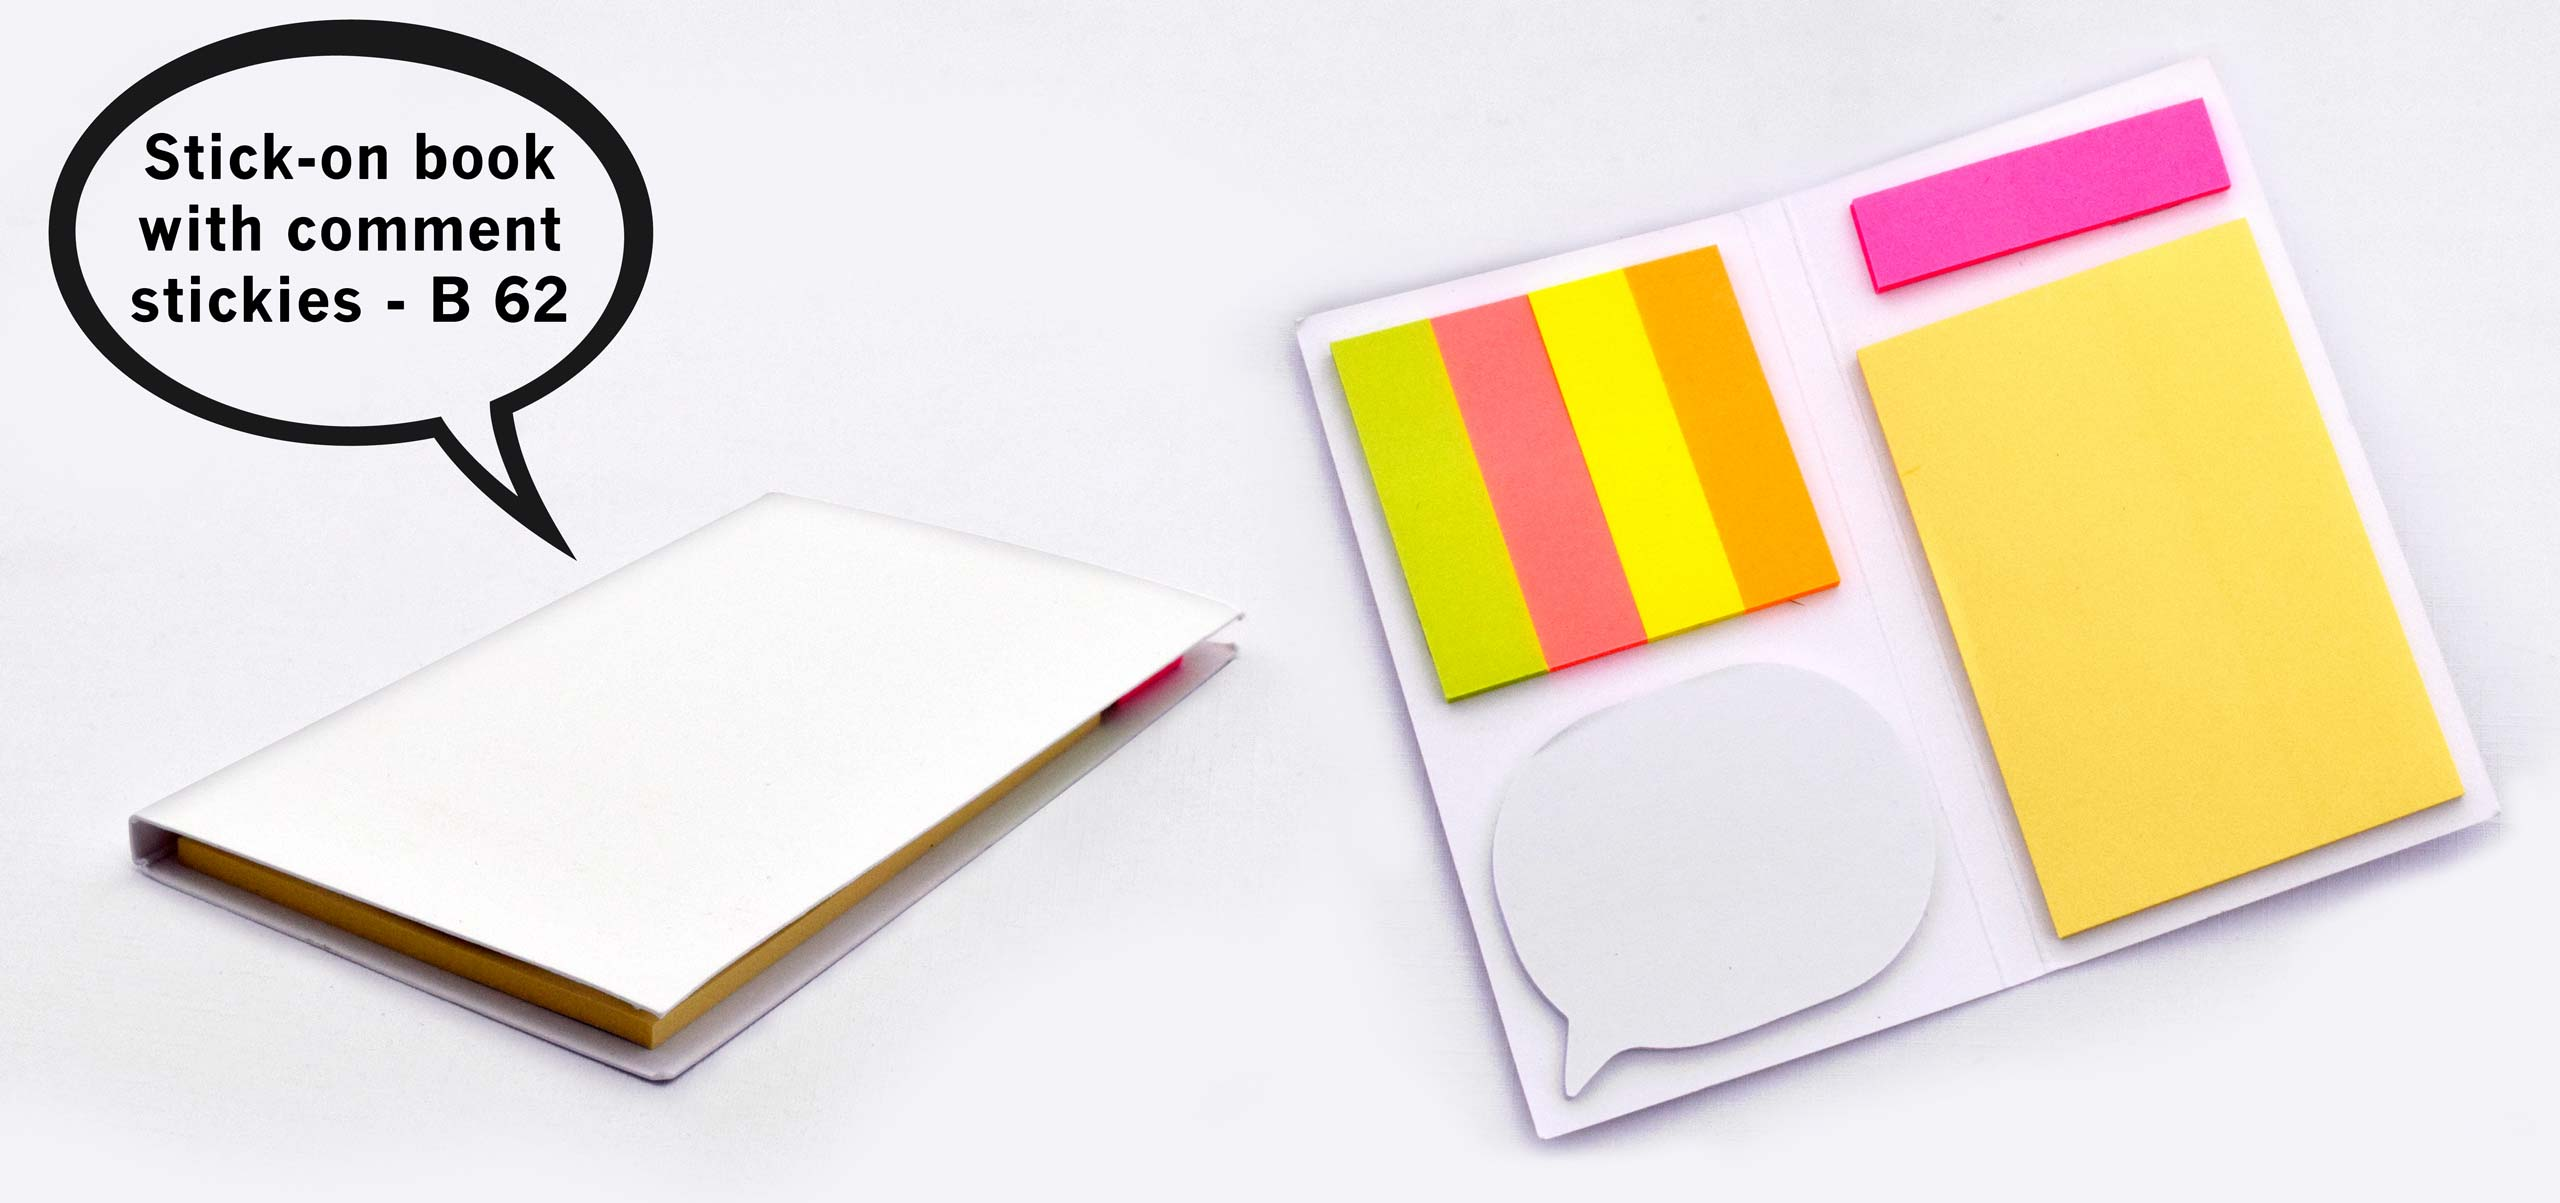 B62 - Stick-on book with comment stickies